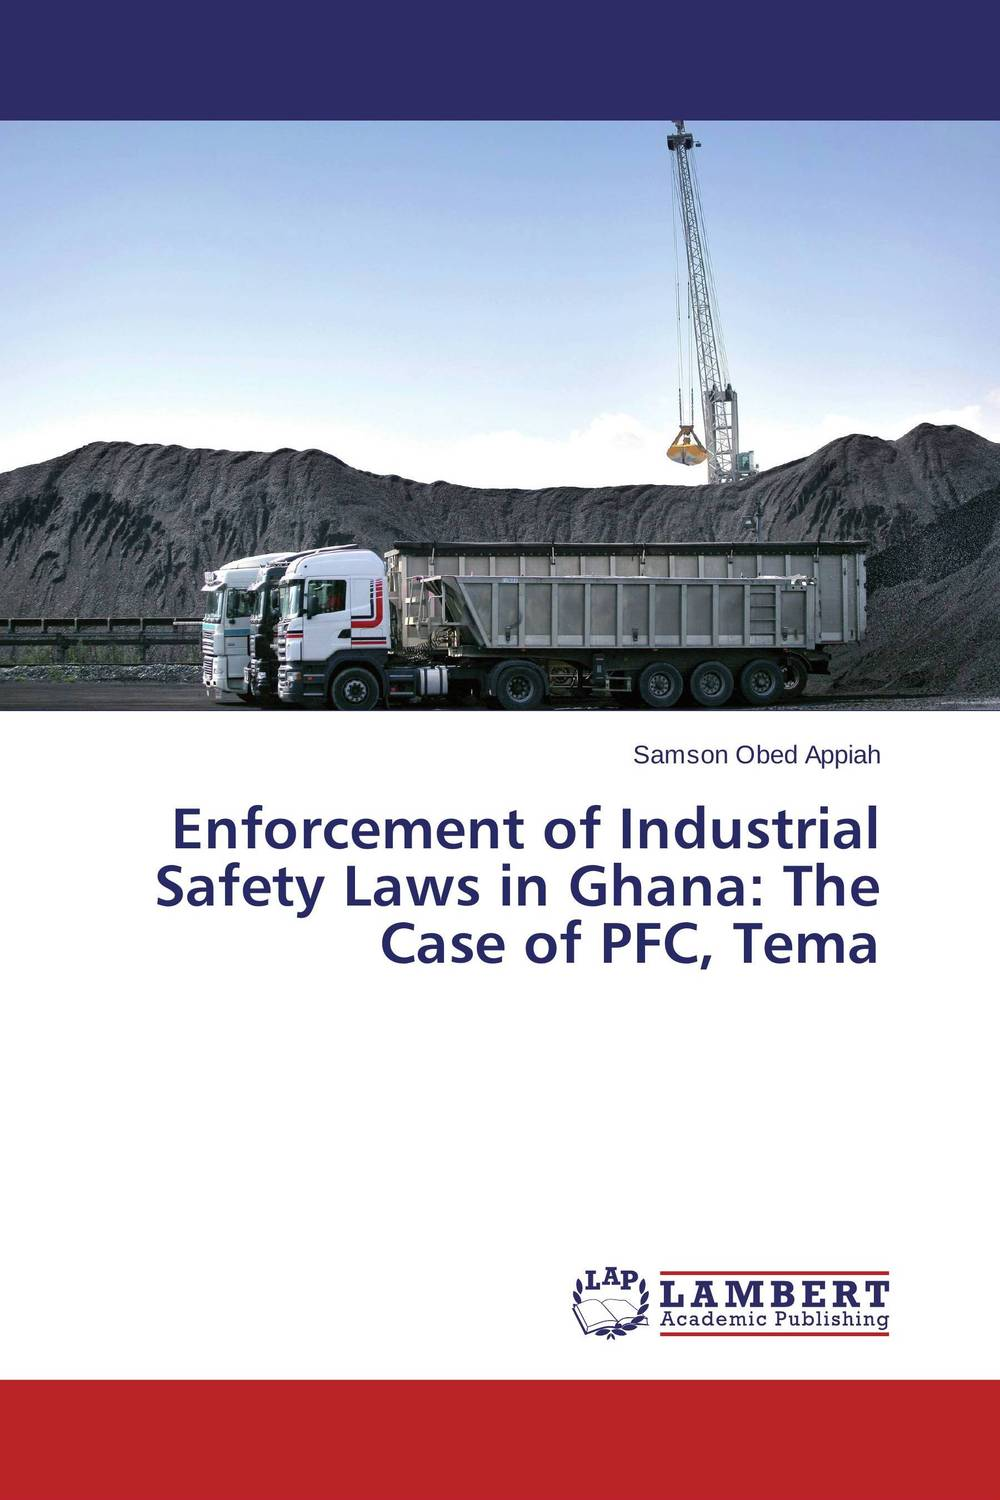 Enforcement of Industrial Safety Laws in Ghana: The Case of PFC, Tema